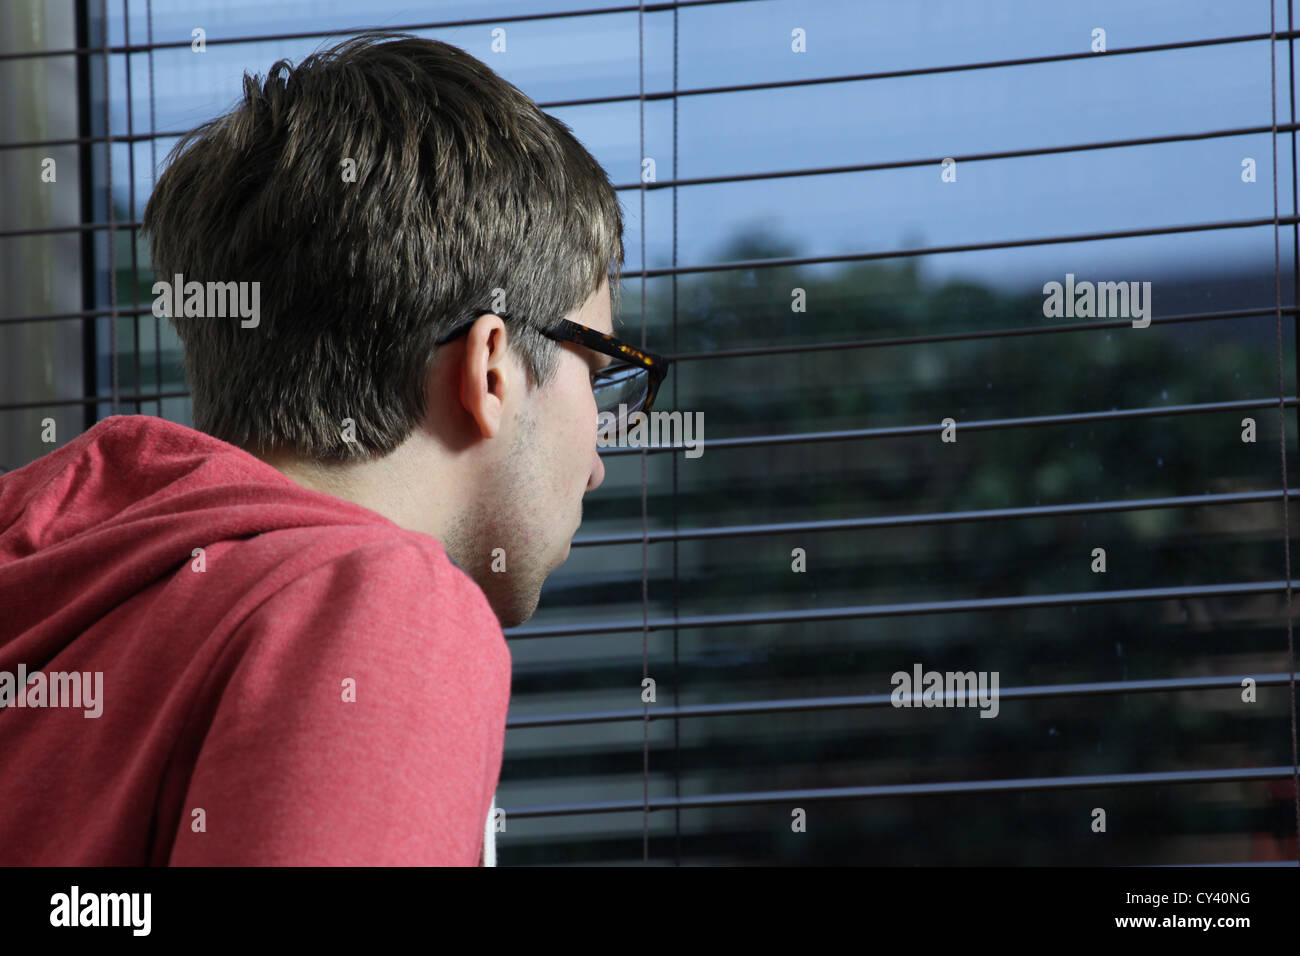 Young man wearing glasses, looking through a window blind. - Stock Image